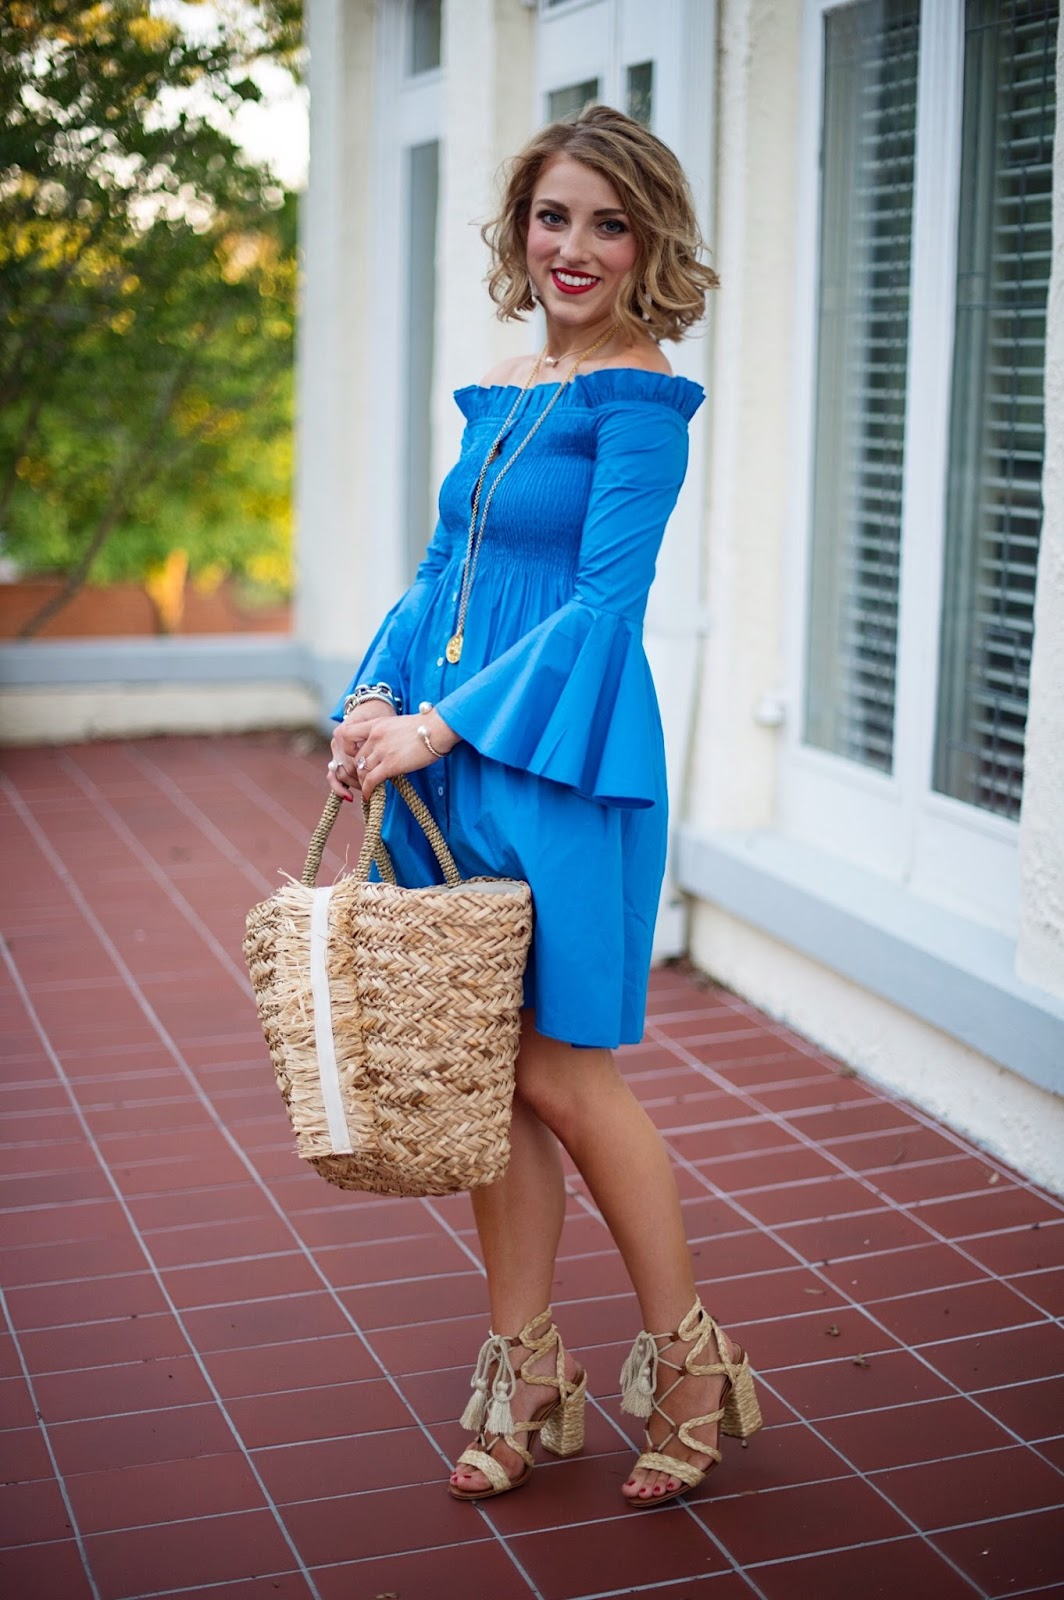 Ruffle Shirt Dress - Click through to see more on Something Delightful Blog!